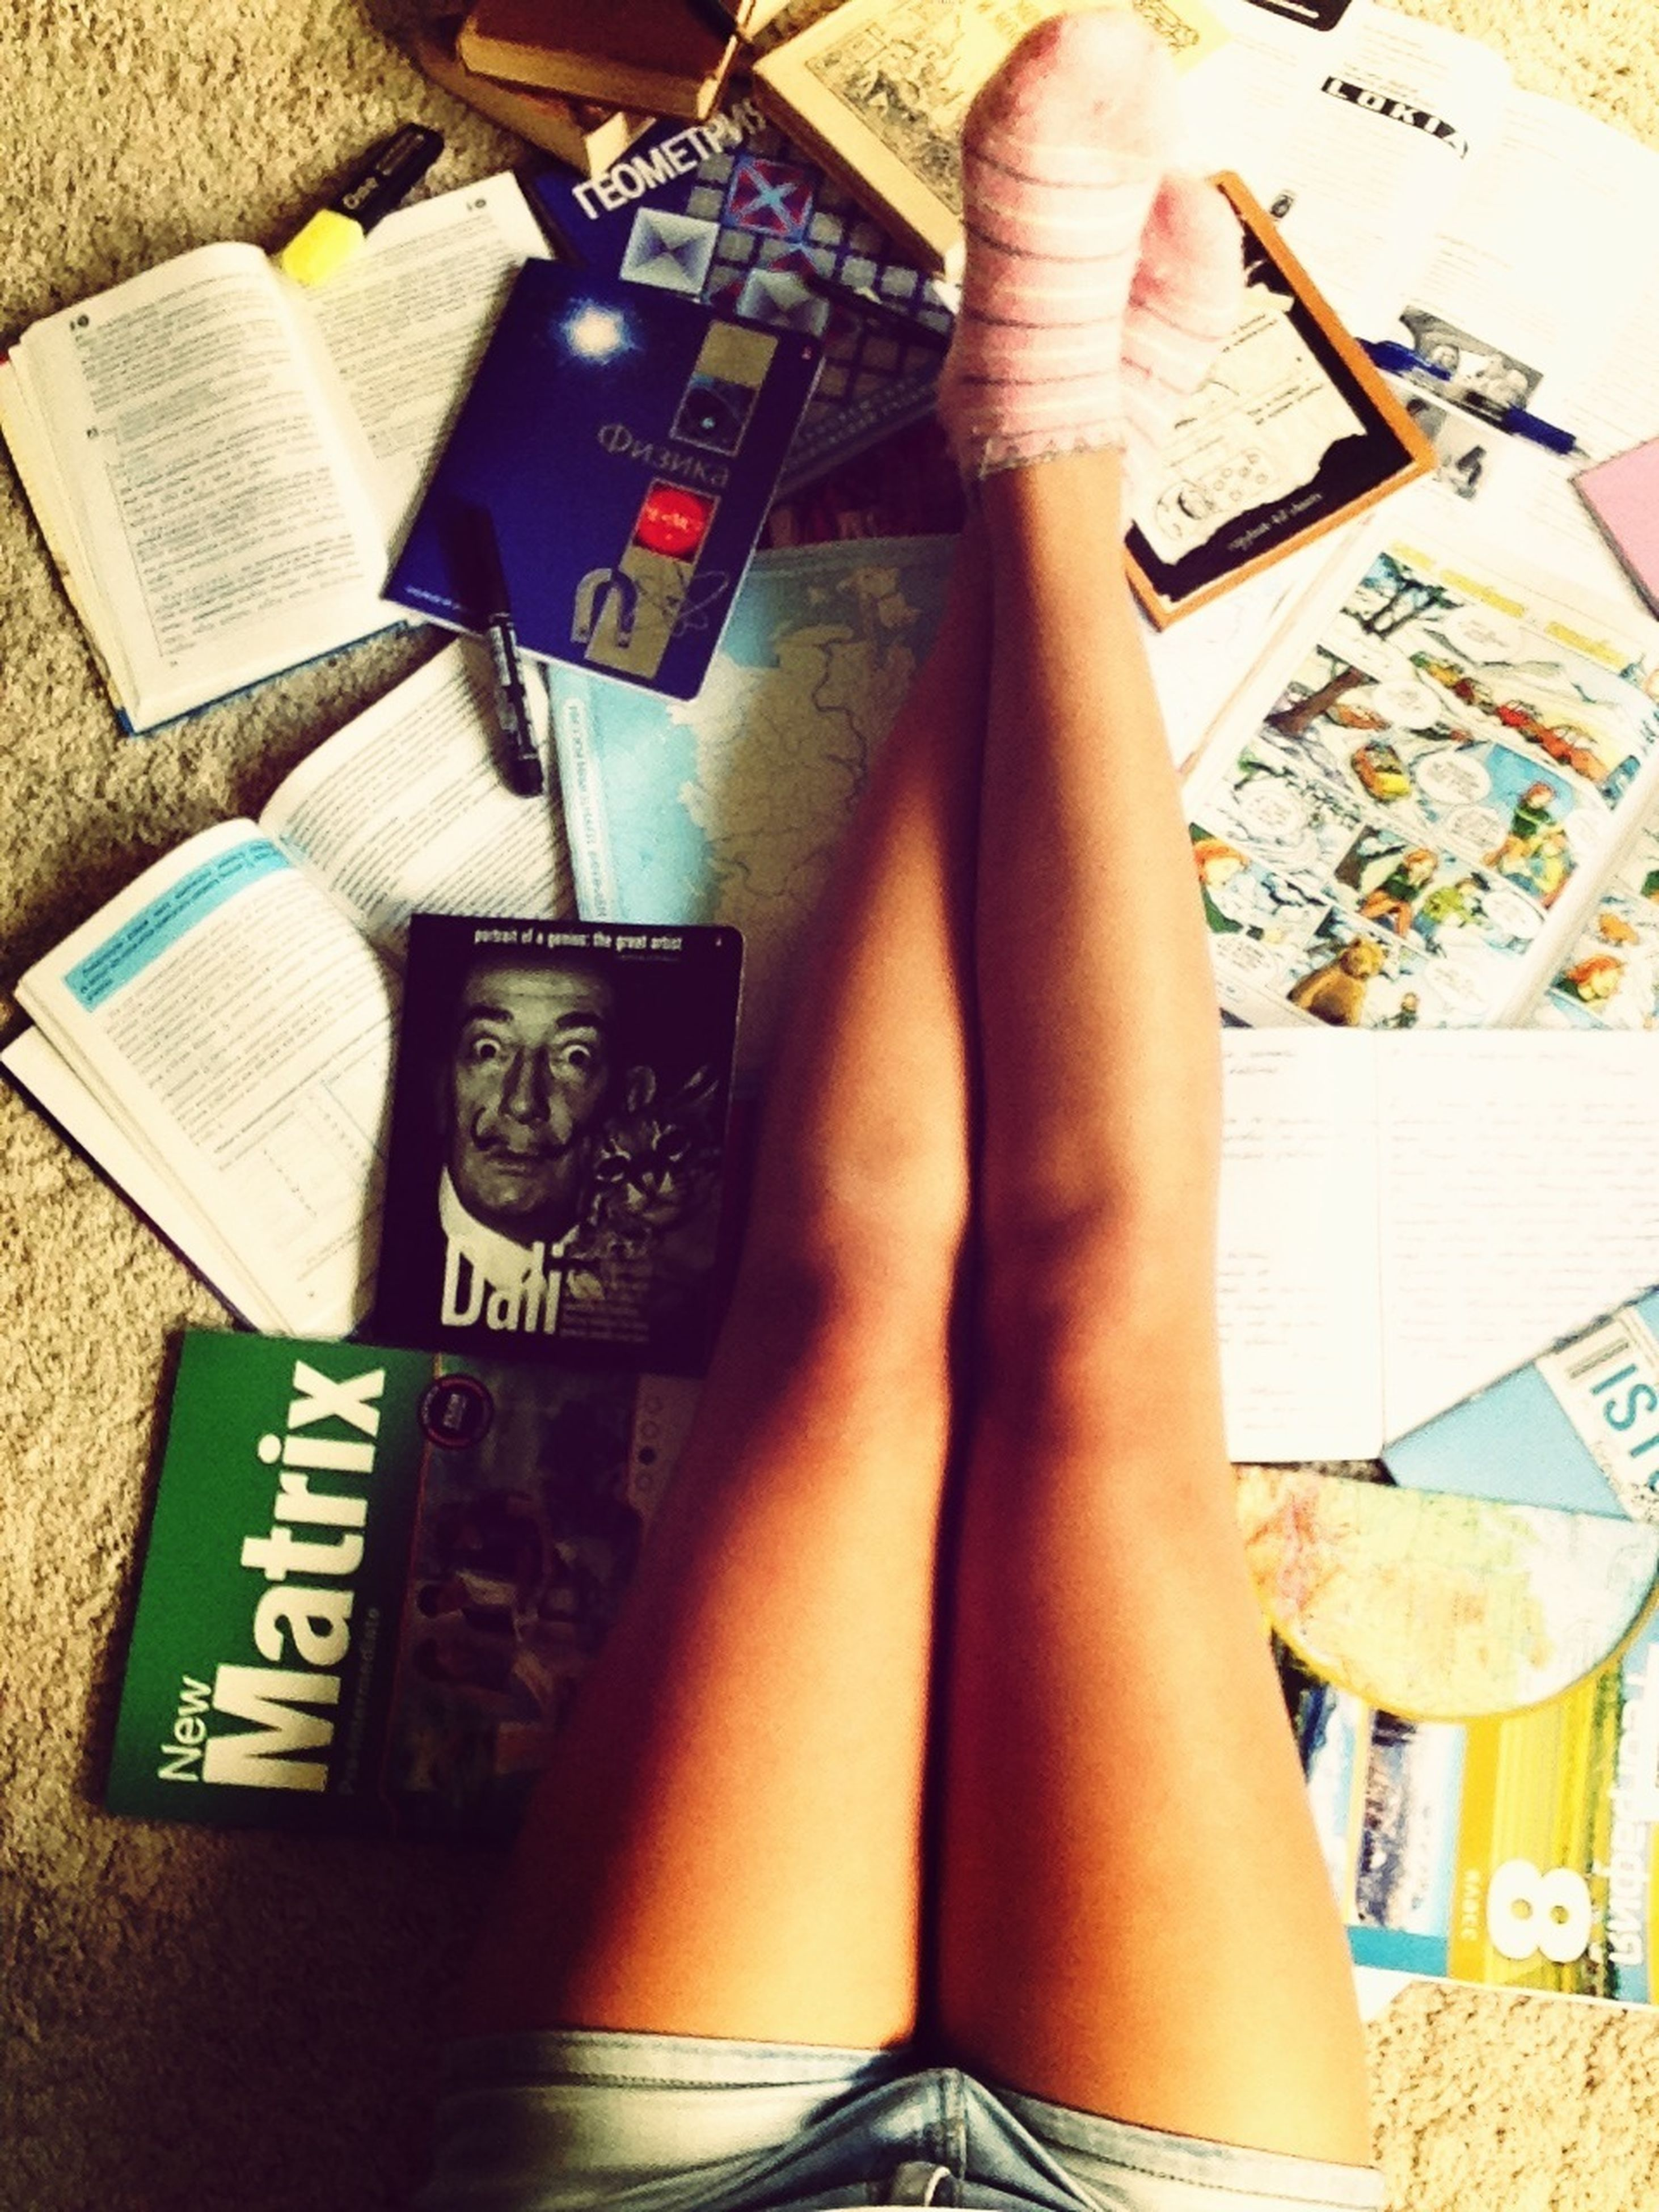 indoors, lifestyles, person, book, leisure activity, low section, part of, relaxation, high angle view, barefoot, home interior, wireless technology, communication, personal perspective, legs crossed at ankle